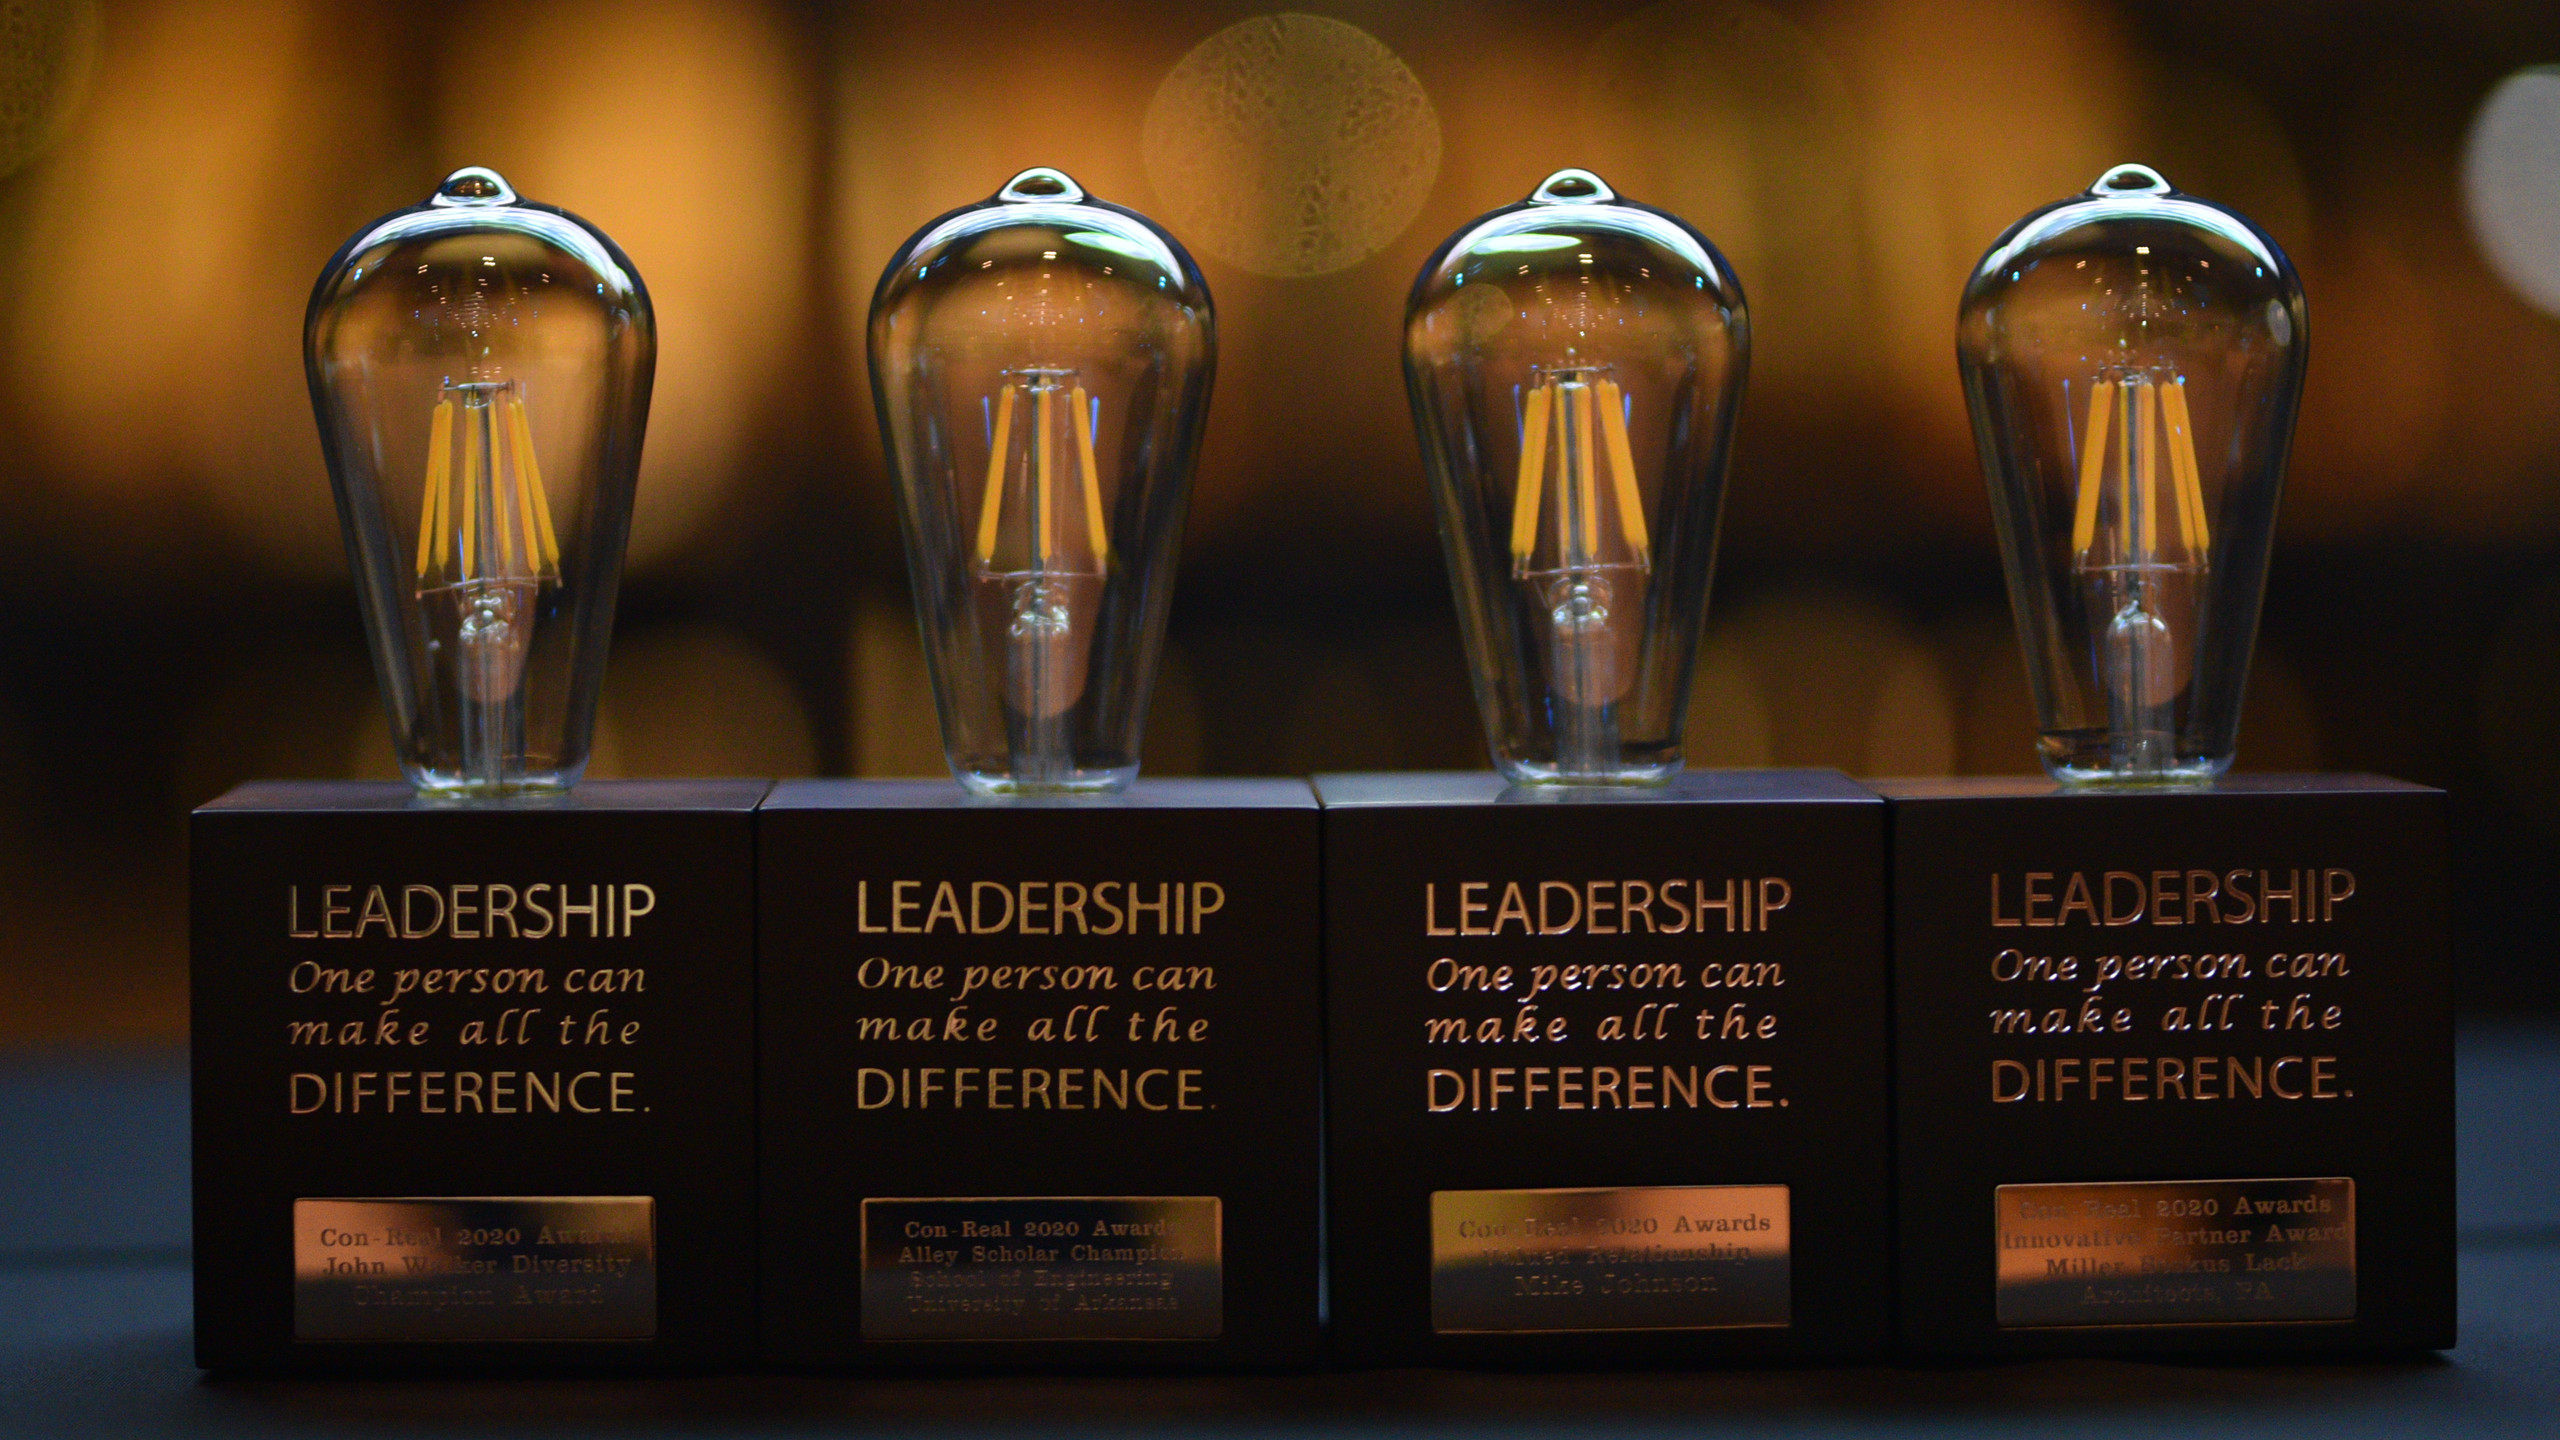 """4 awards that look like light bulbs in a row, the awards say """"Leadership - one person can make all the difference."""""""